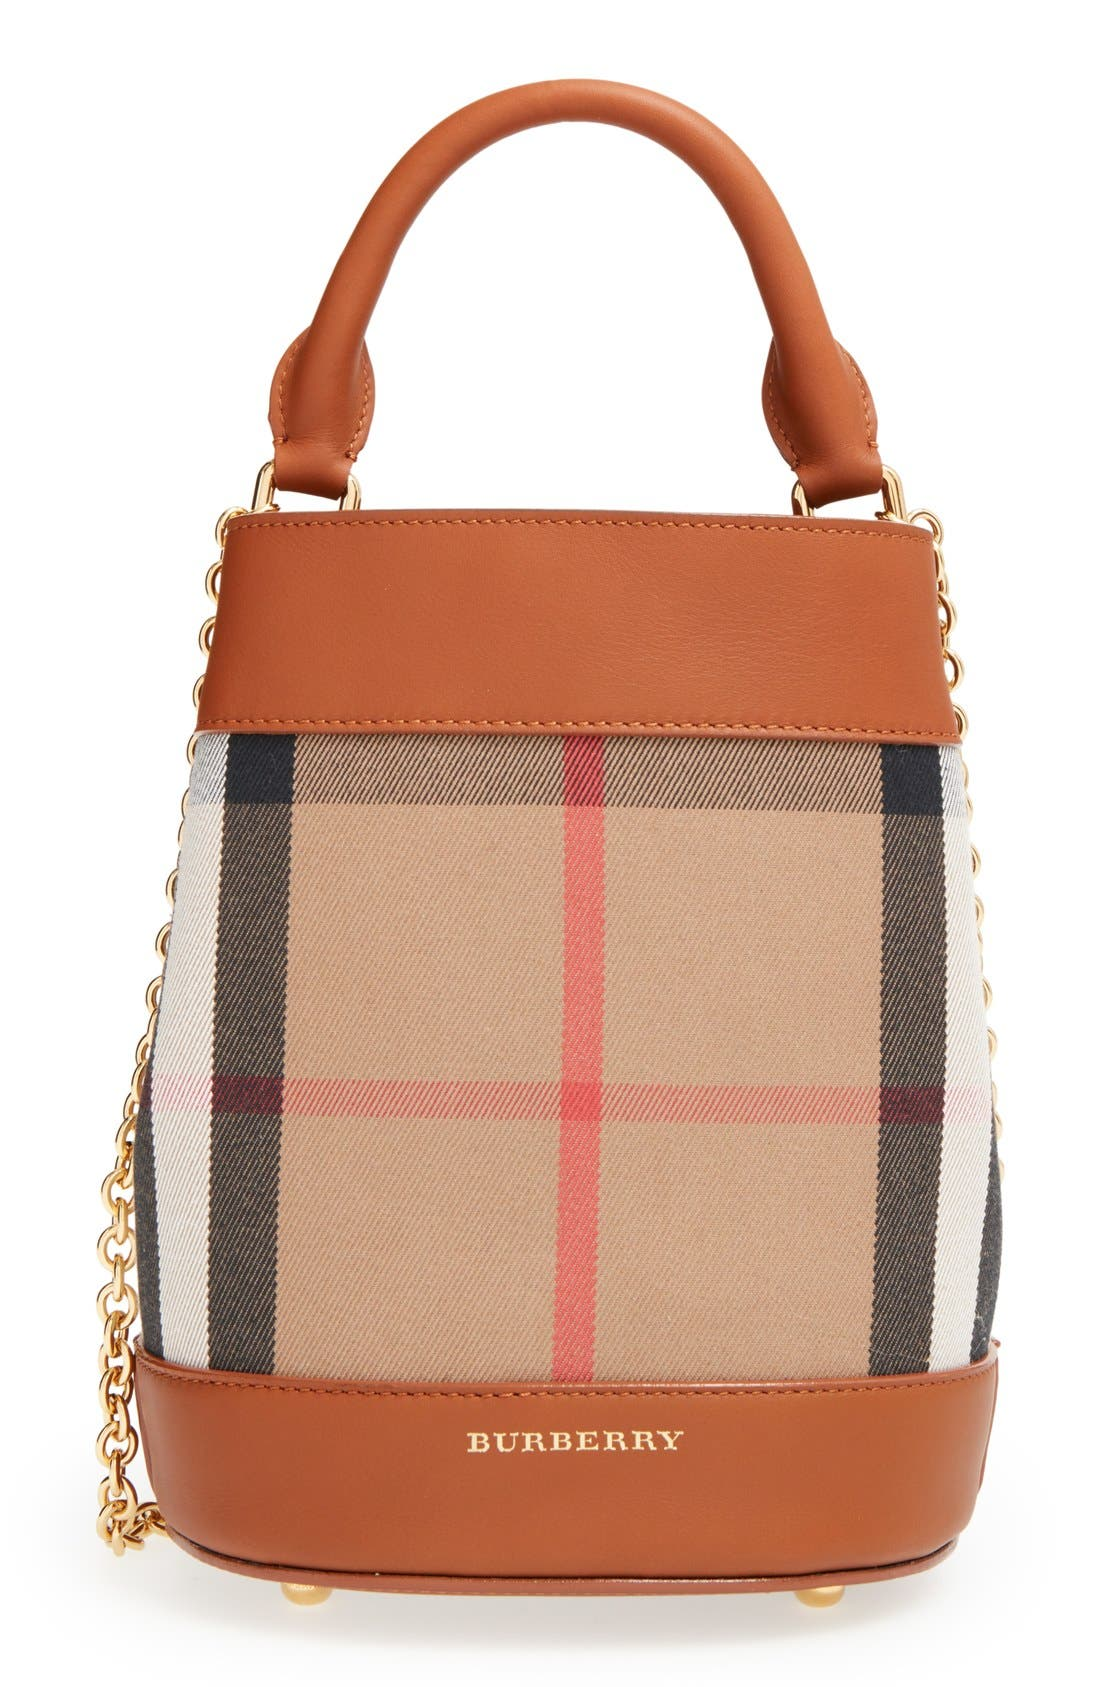 'Mini House Check' Bucket Bag - Brown in Light Toffee